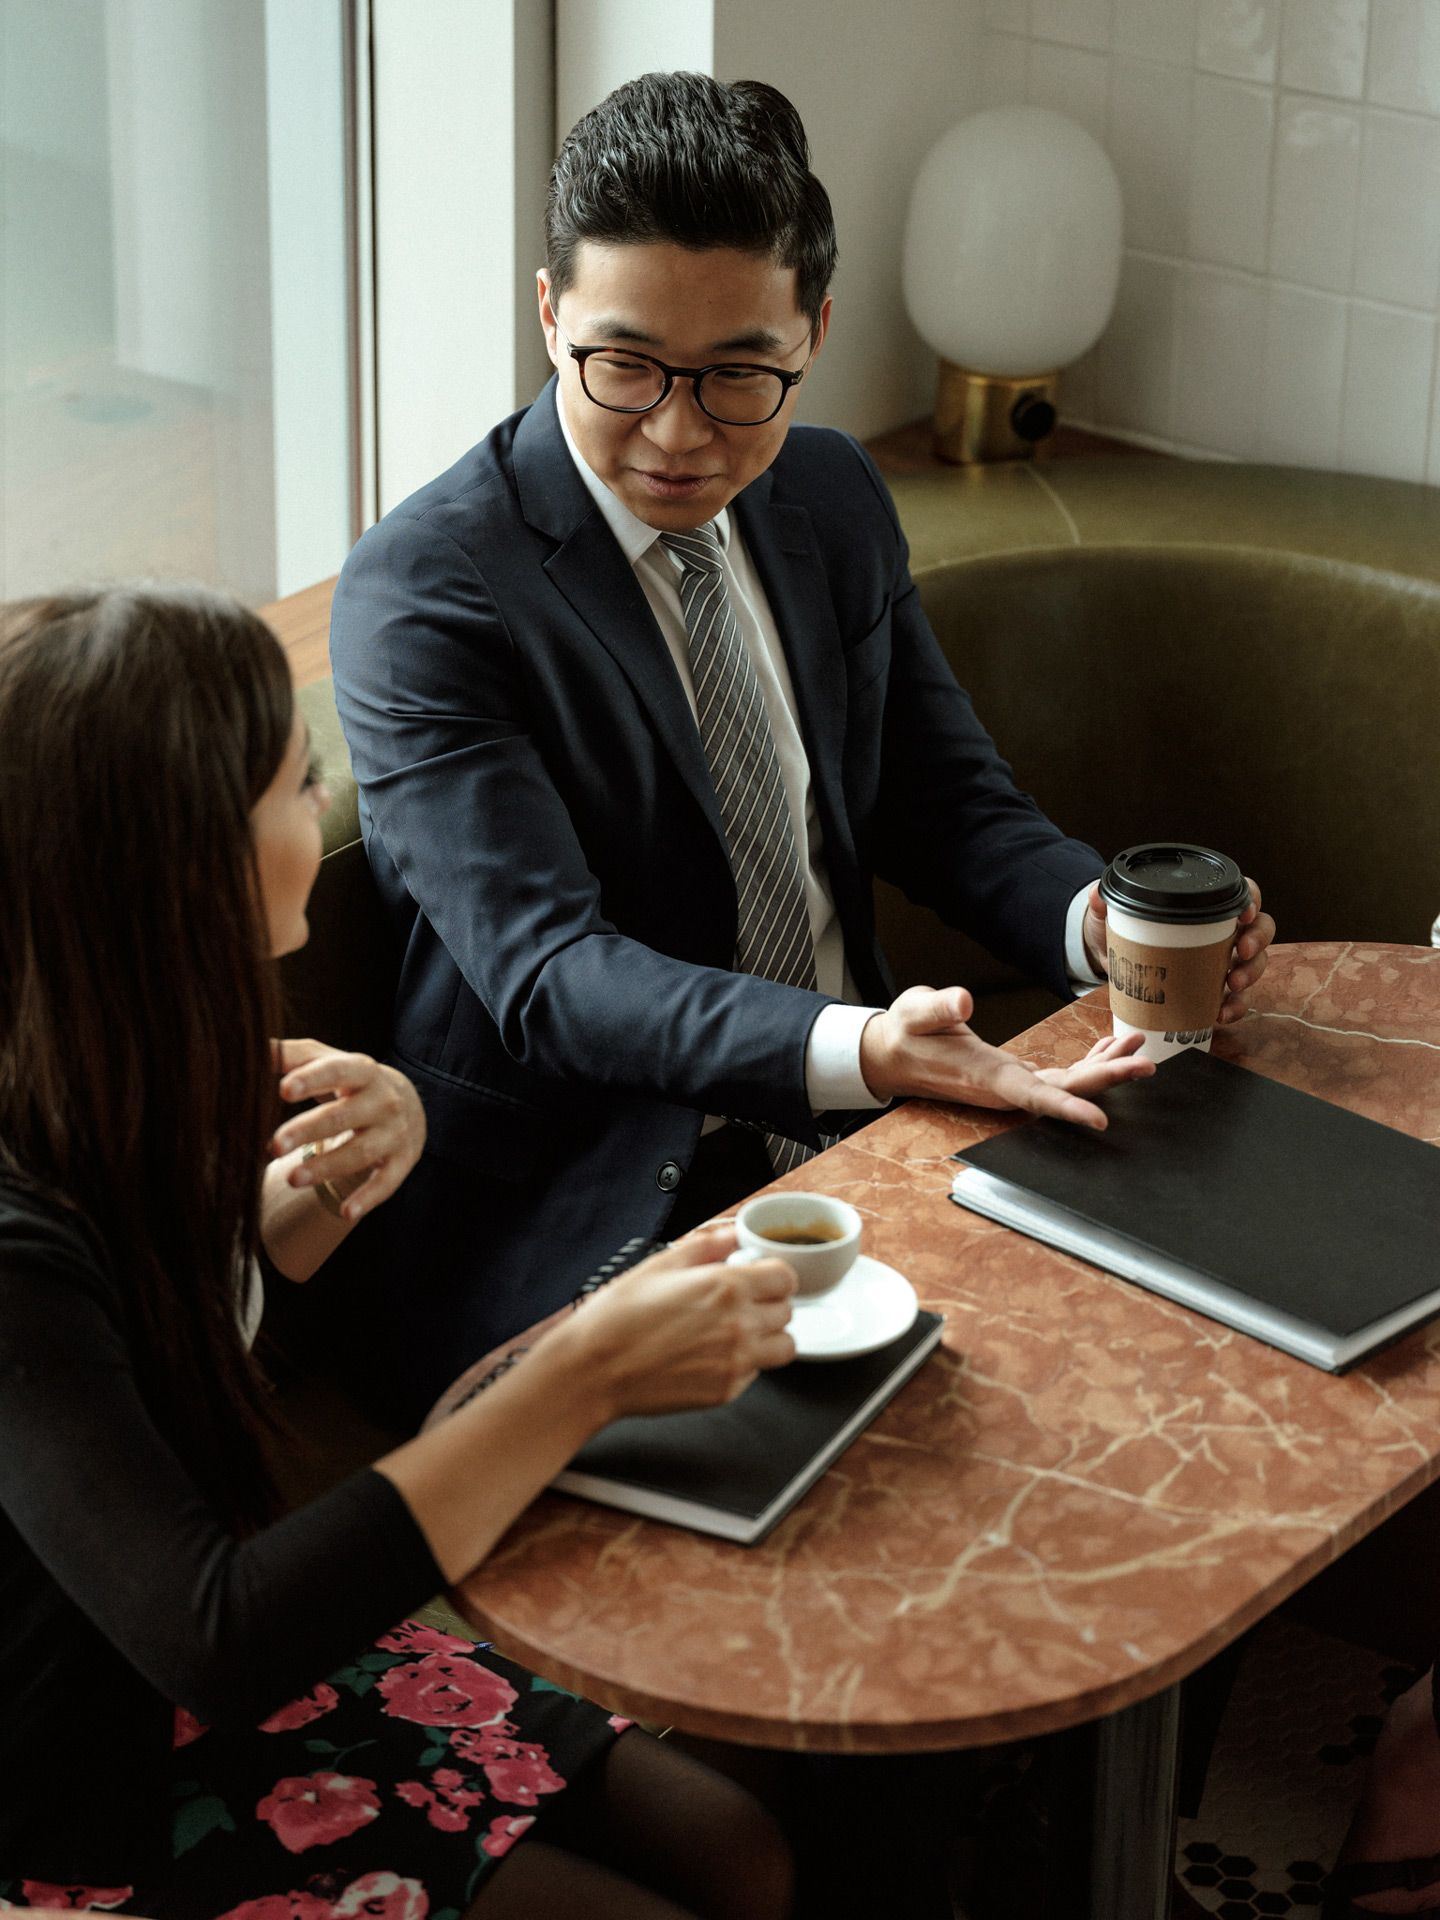 two people dressed professionally talking while drinking coffee photographed by Alexi Hobbs for PSP